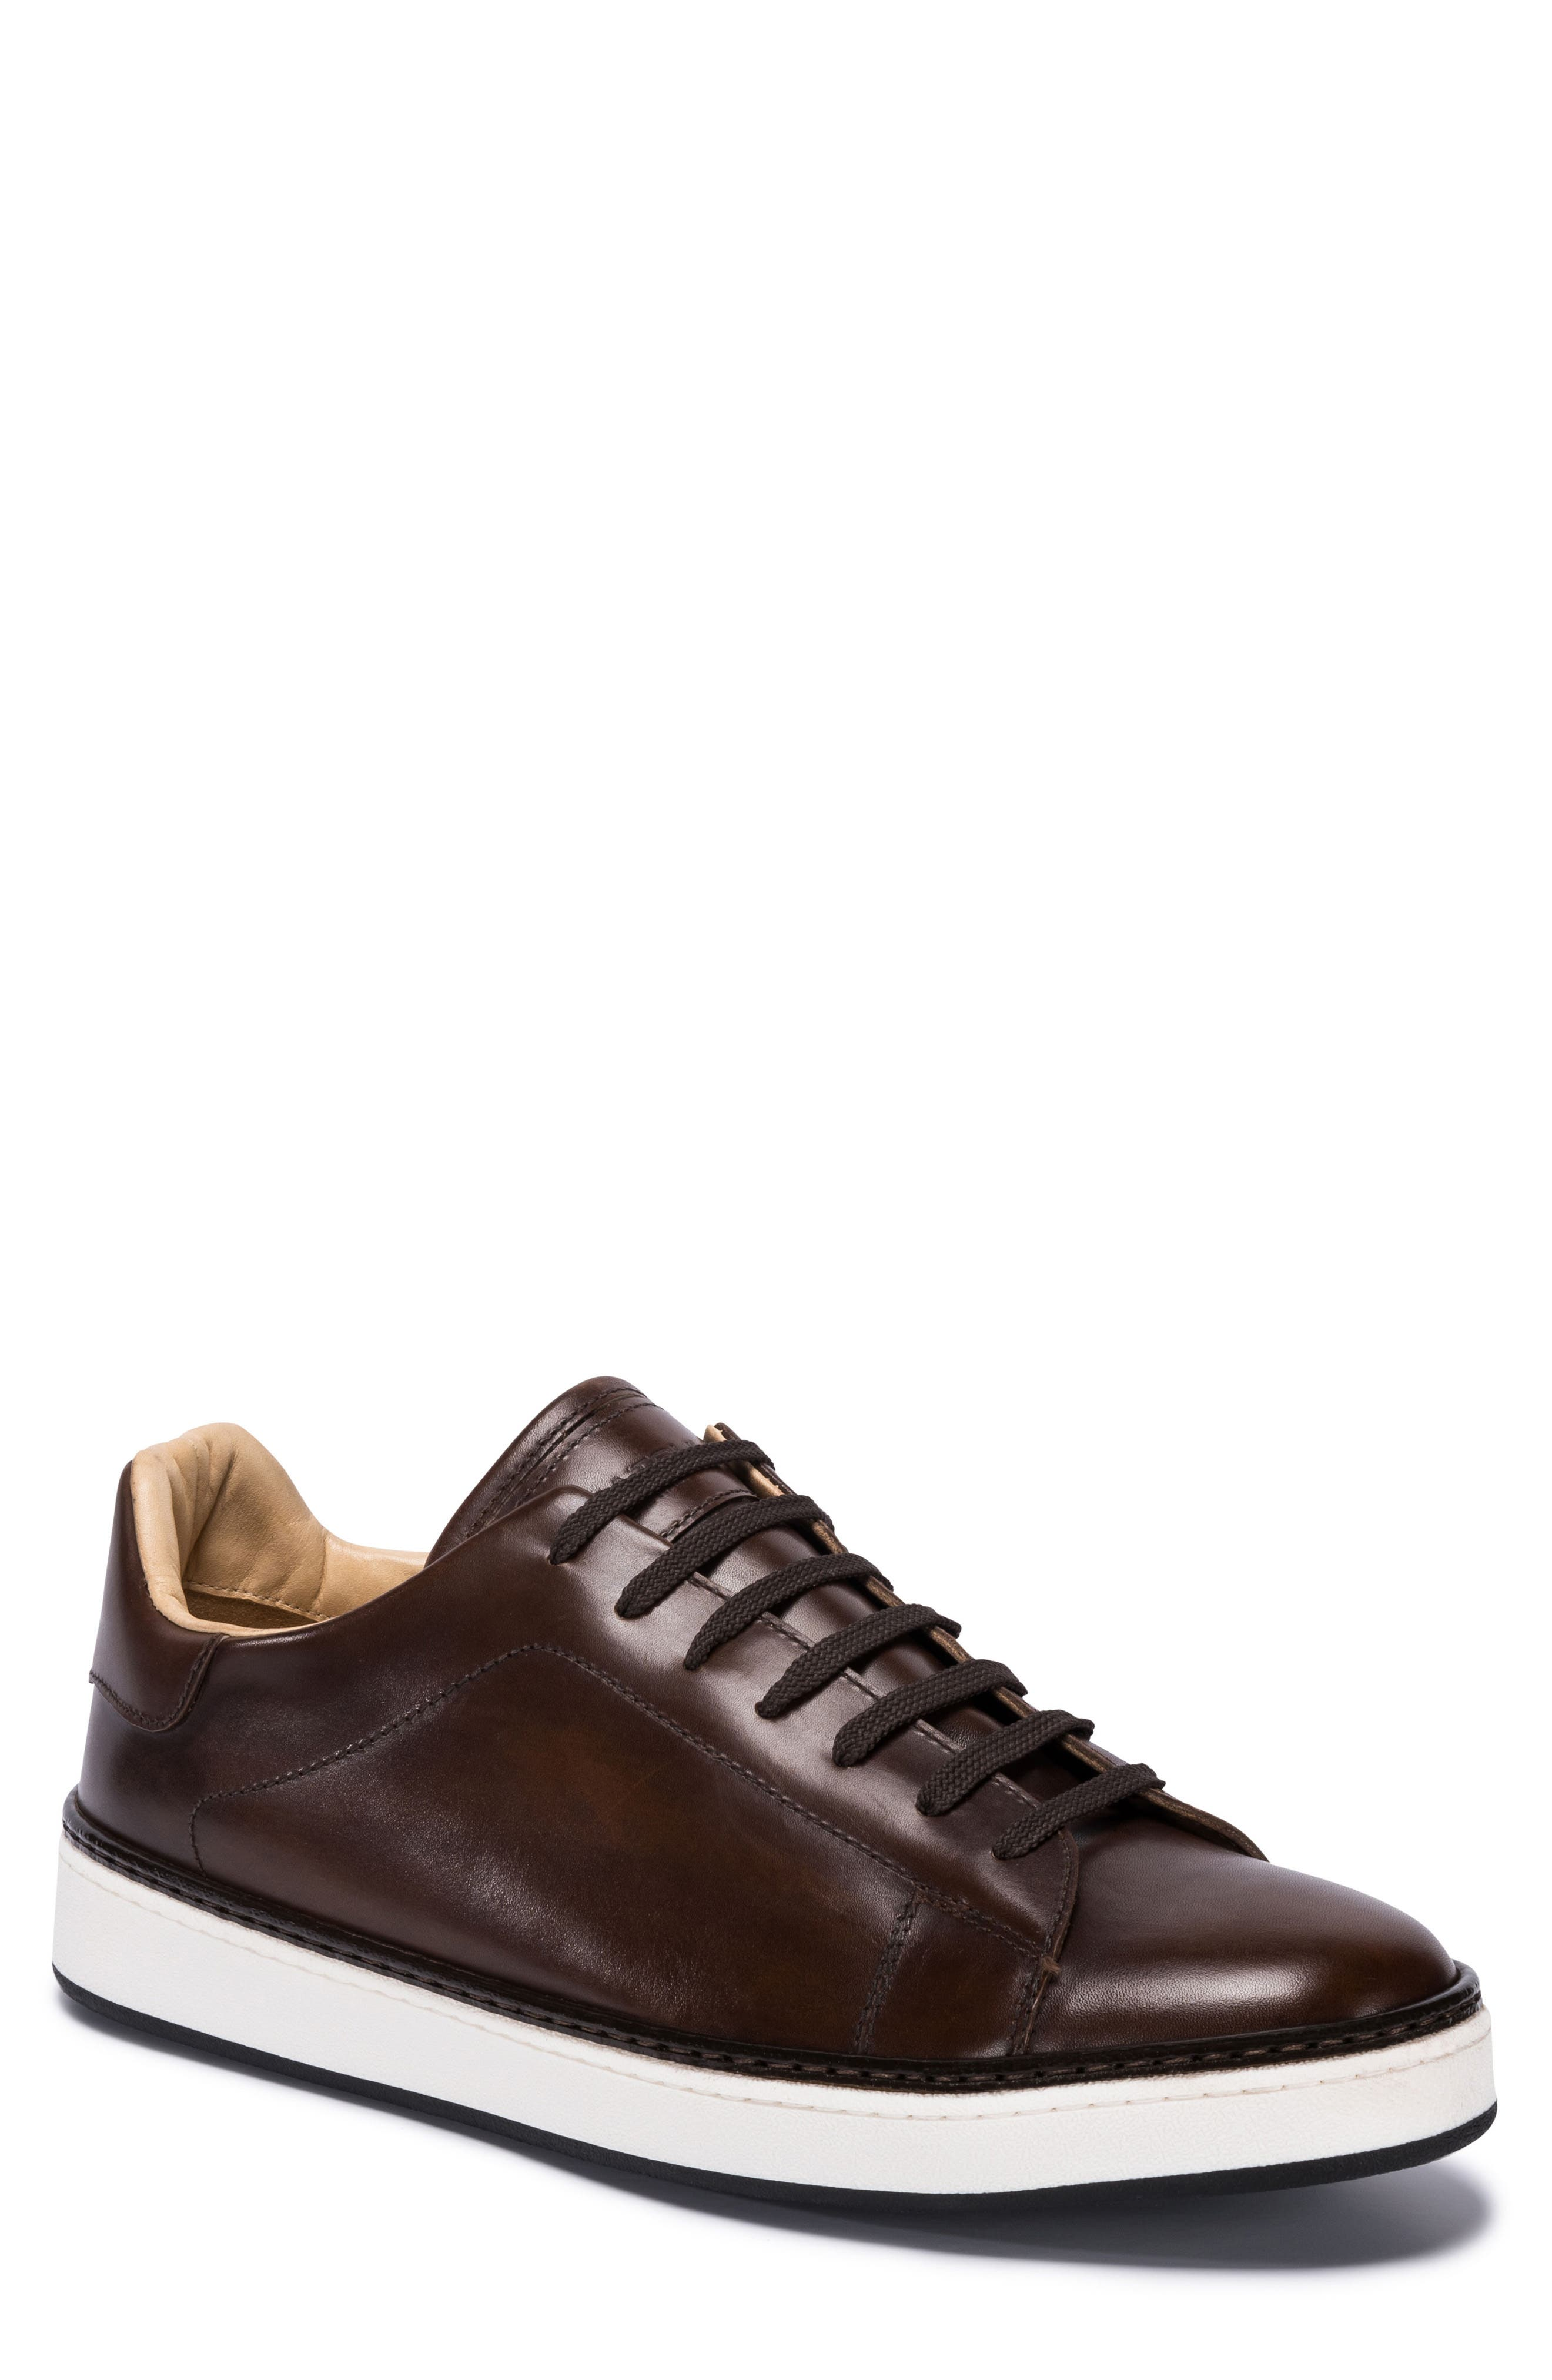 Firenze Low Top Sneaker,                             Main thumbnail 1, color,                             BURGUNDY LEATHER